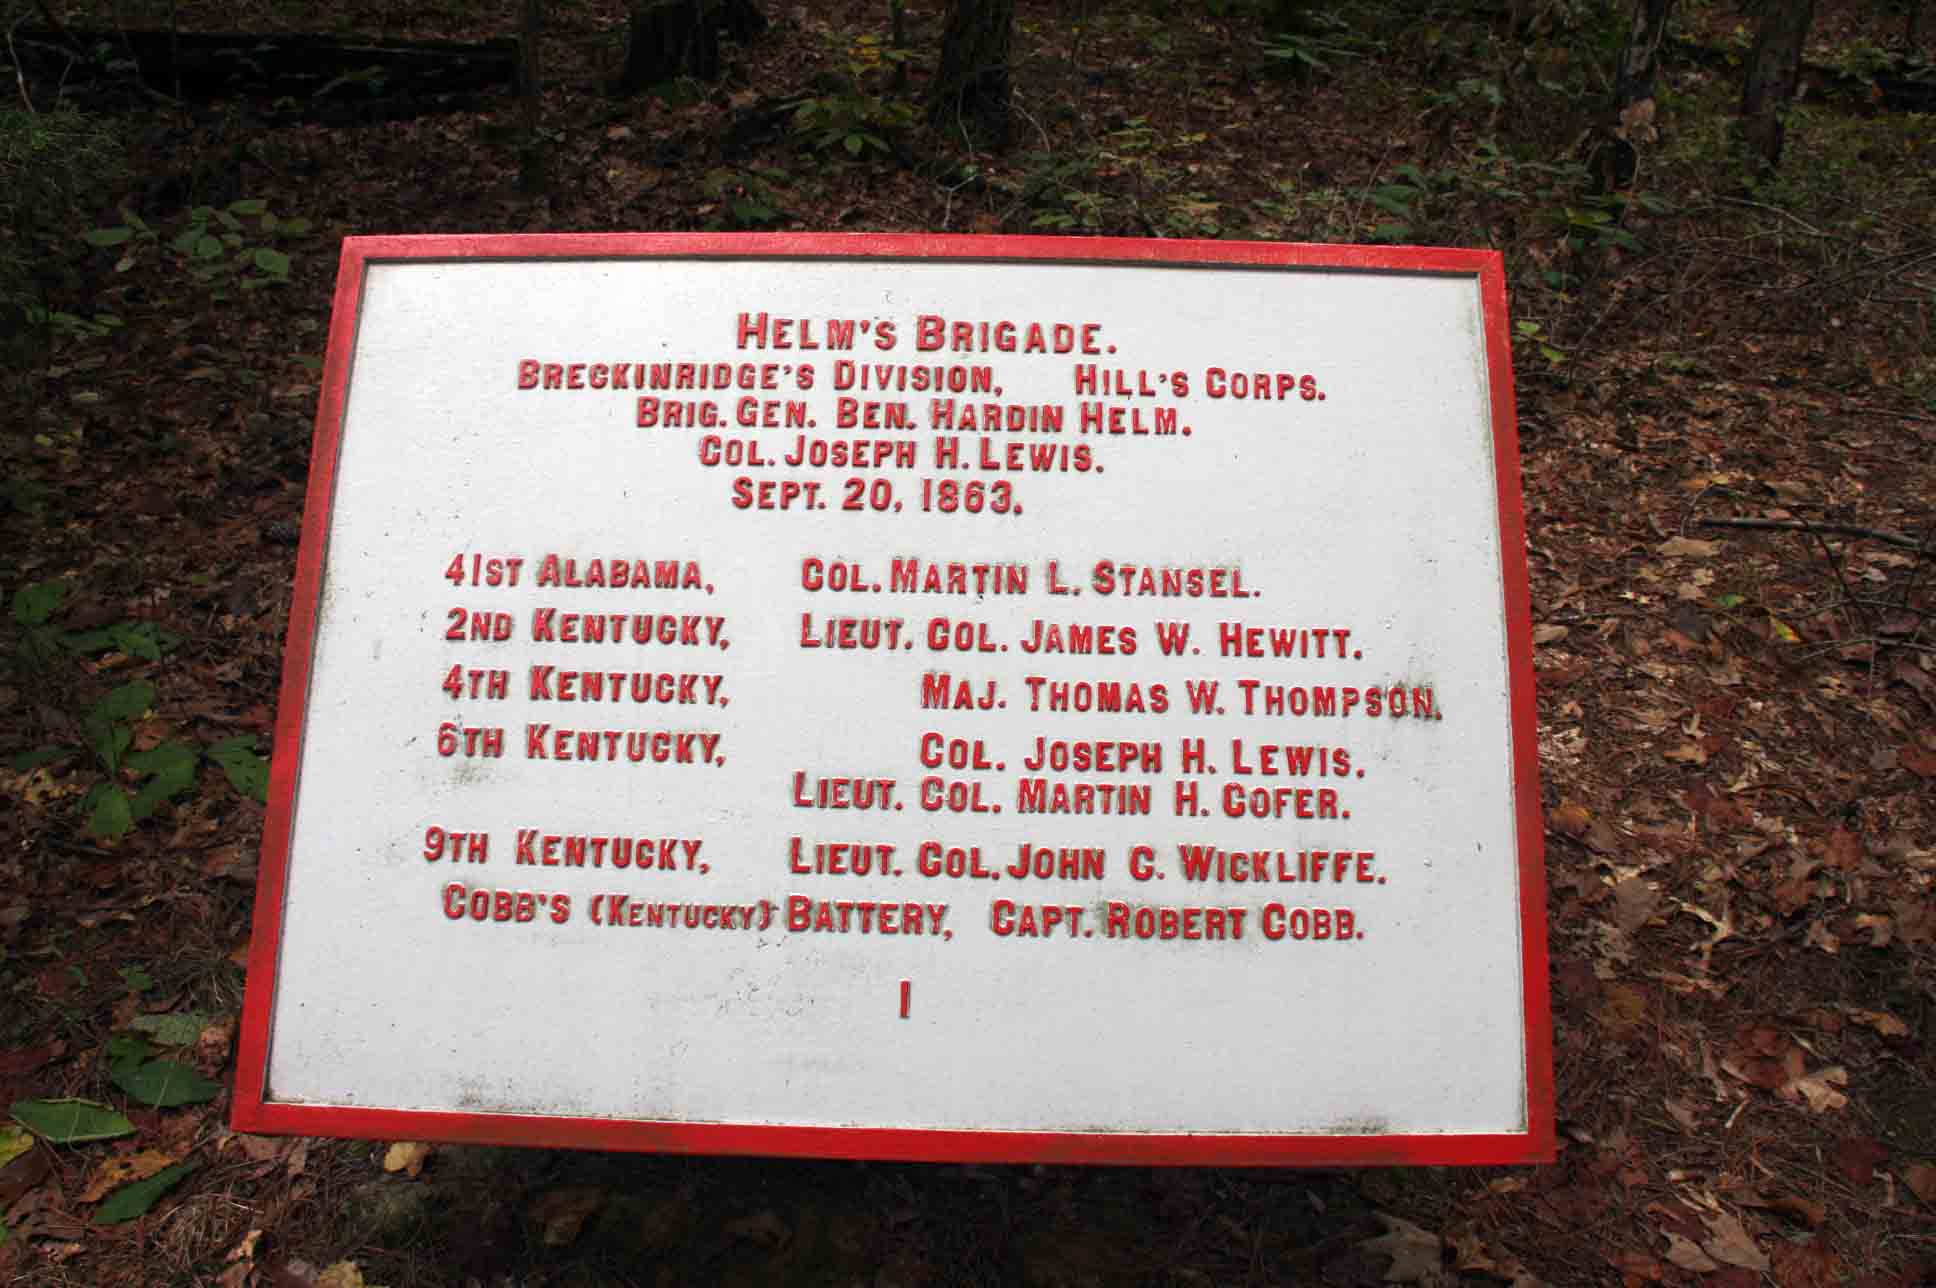 Helm's Brigade Tablet, click photo to enlarge.